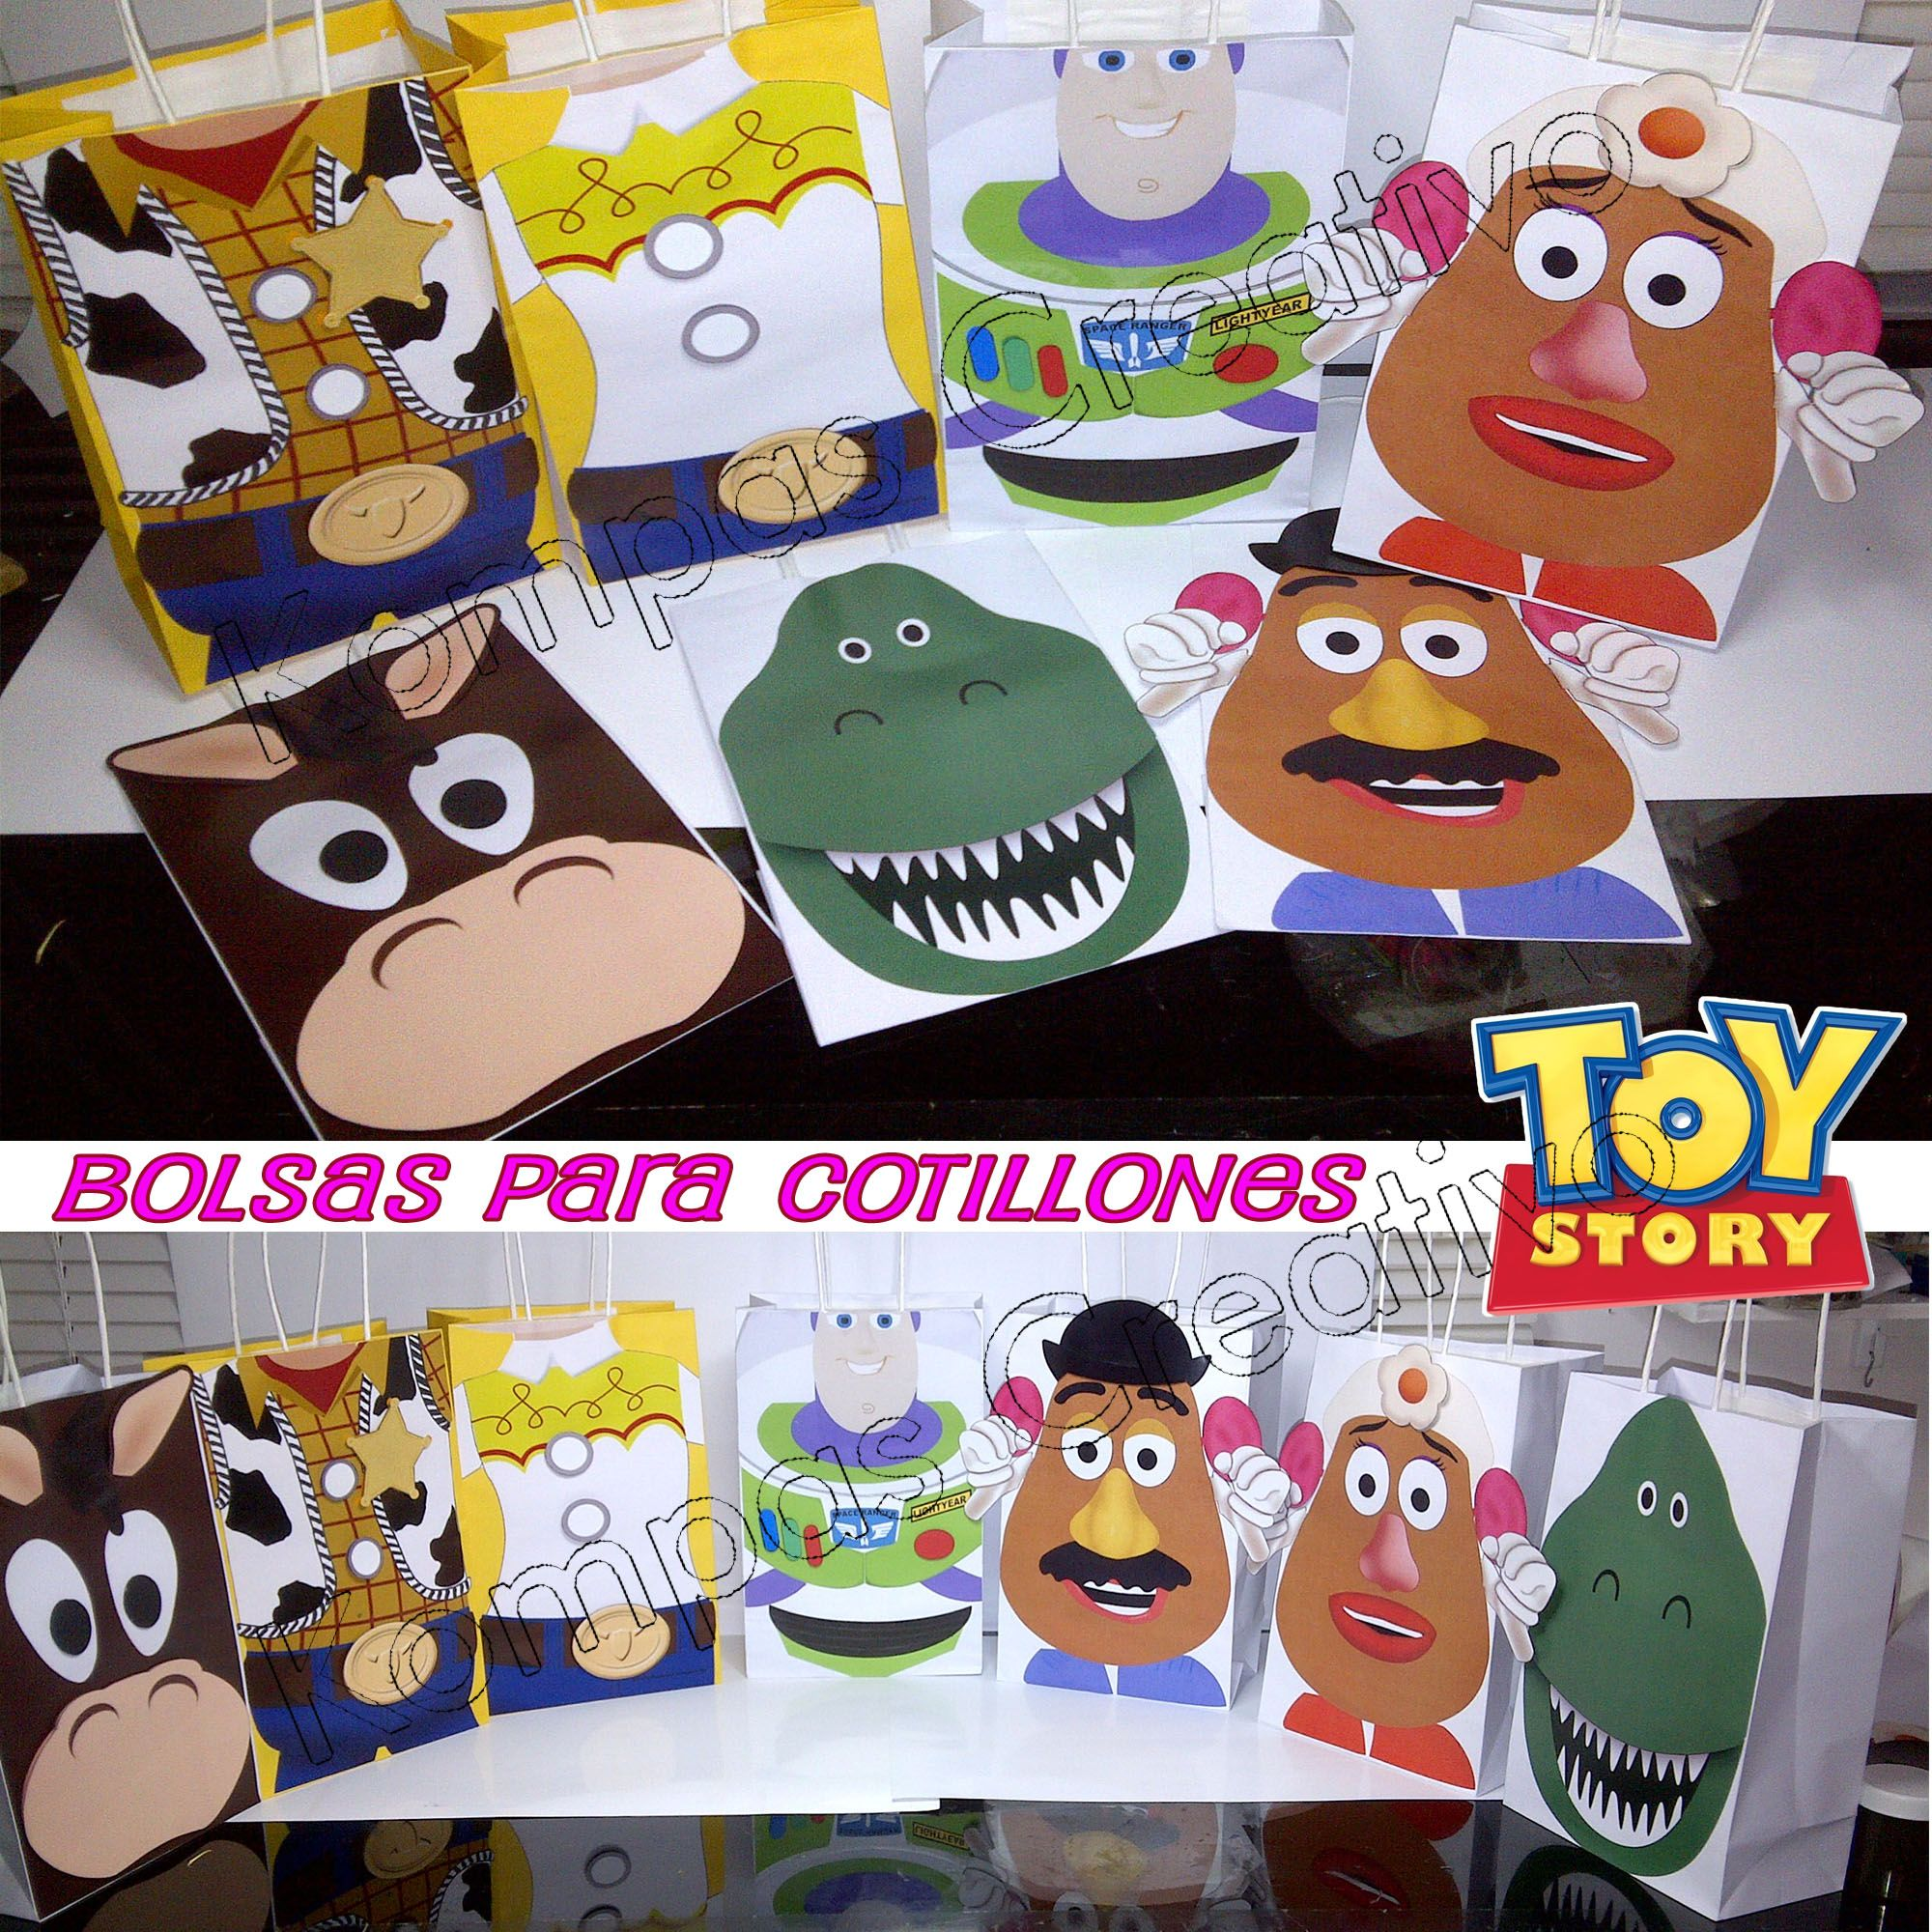 Toy story party ideas birthday in a box - Cotillones Toy Story Ideas Partytoy Storybirthdaychild Partiesboxes